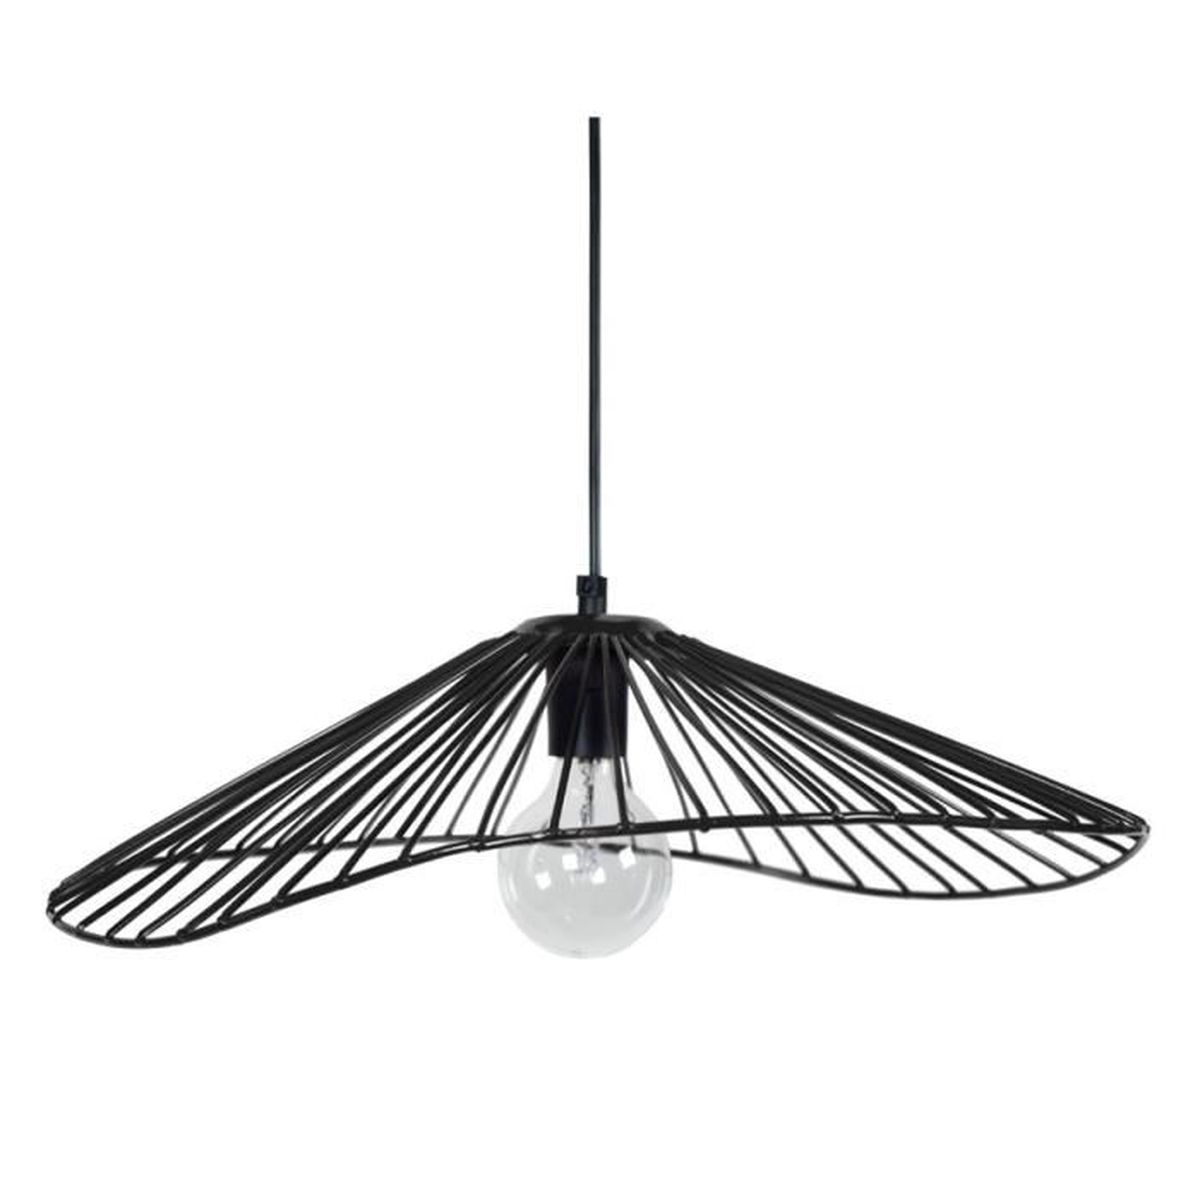 Luminaire suspension ring cvl luminaires suspension lamp for Suspension boule noire